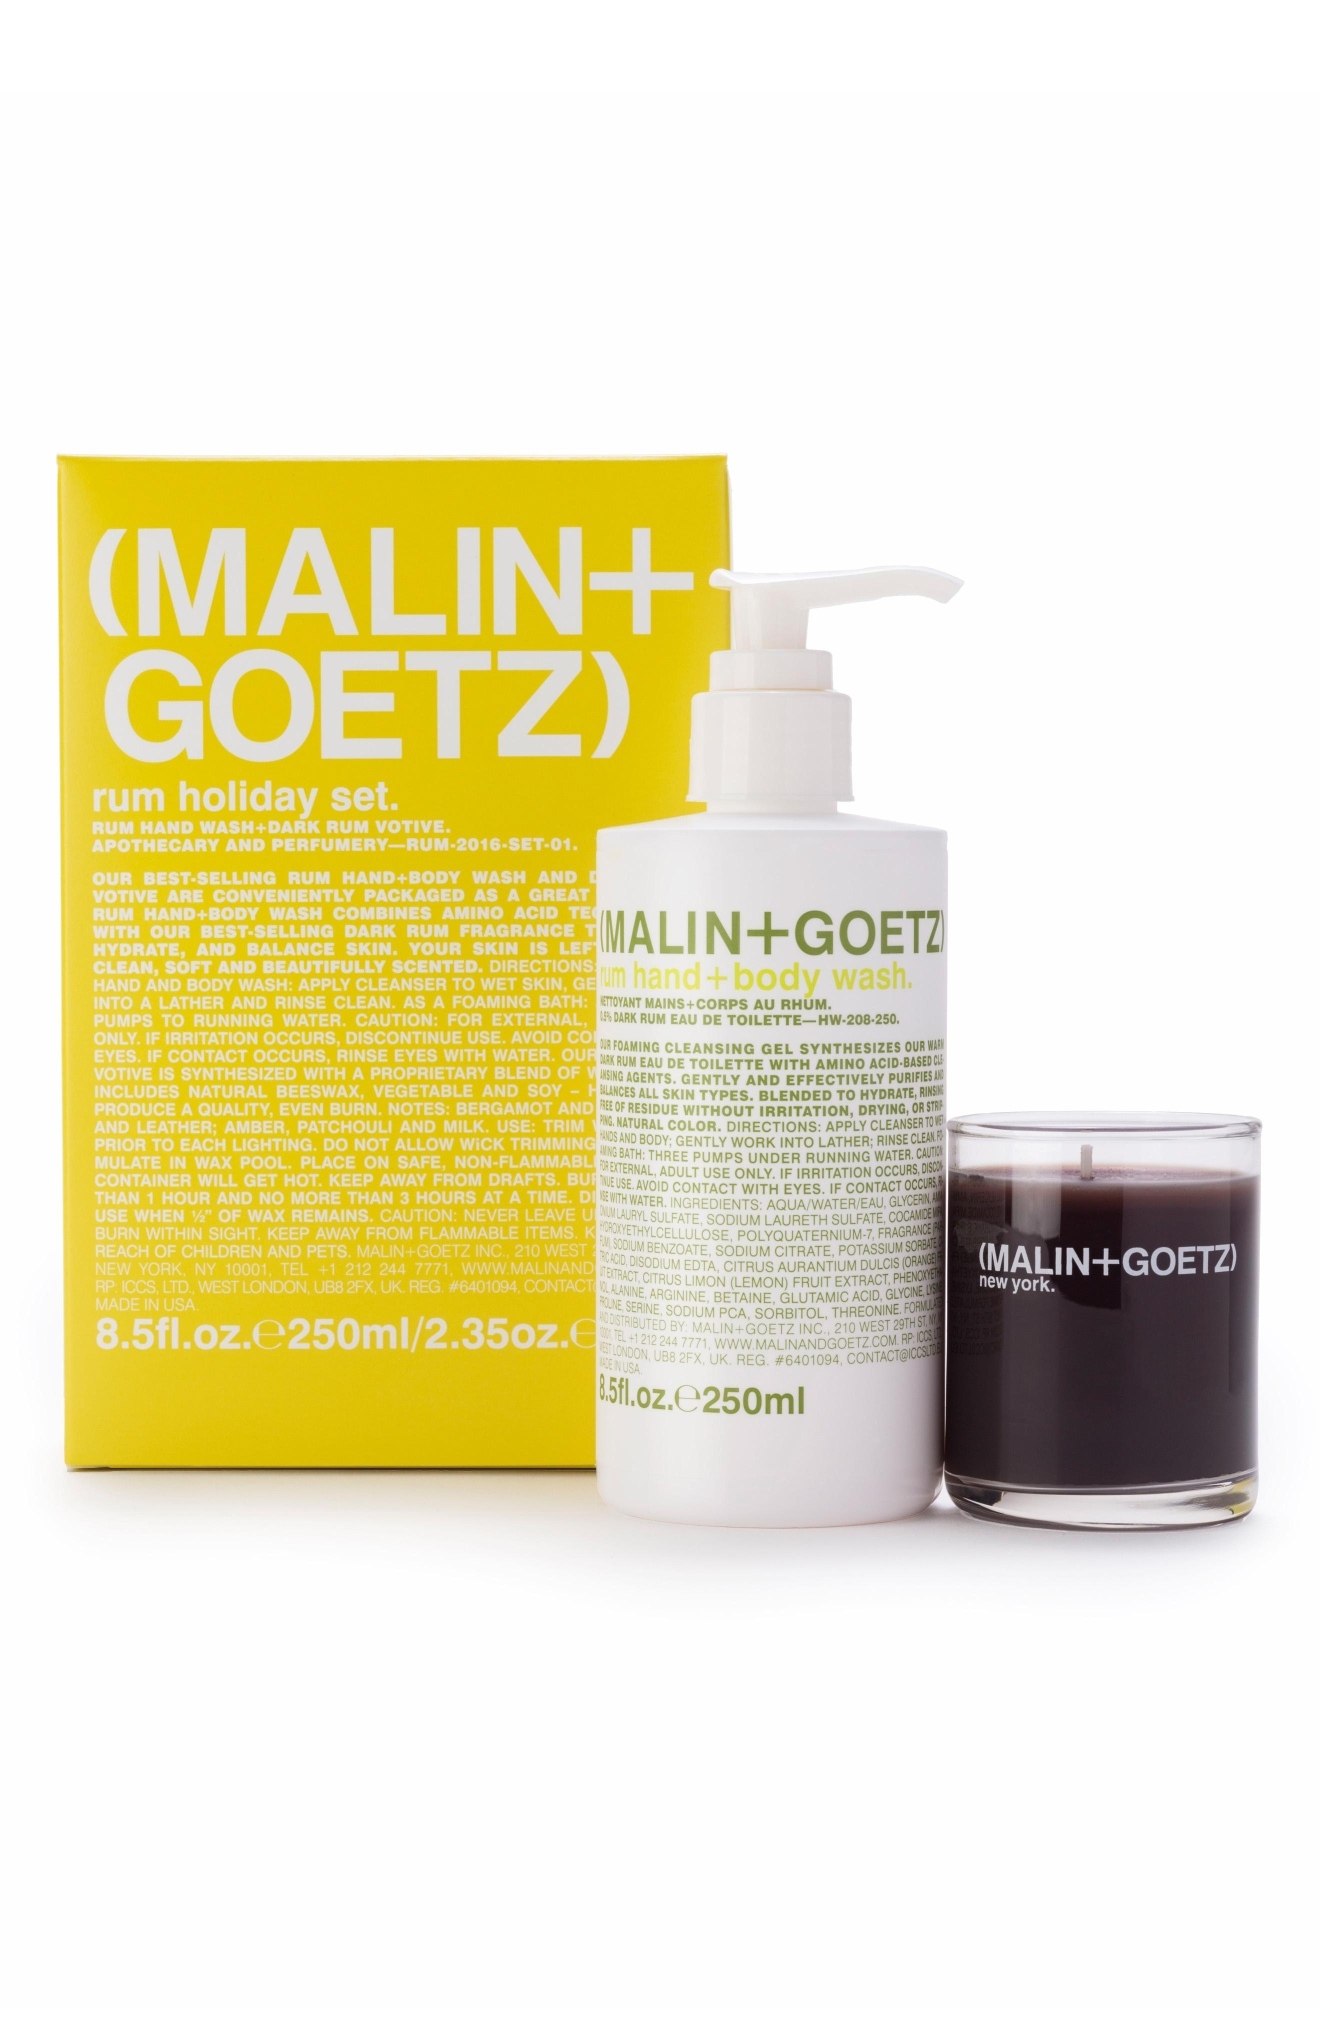 MALIN AND GOETZ  RUM HOLIDAY BOX SET - $35. Buy at shop.nordstrom.com/c/pop-in-olivia-kim (Image: Nordstrom)